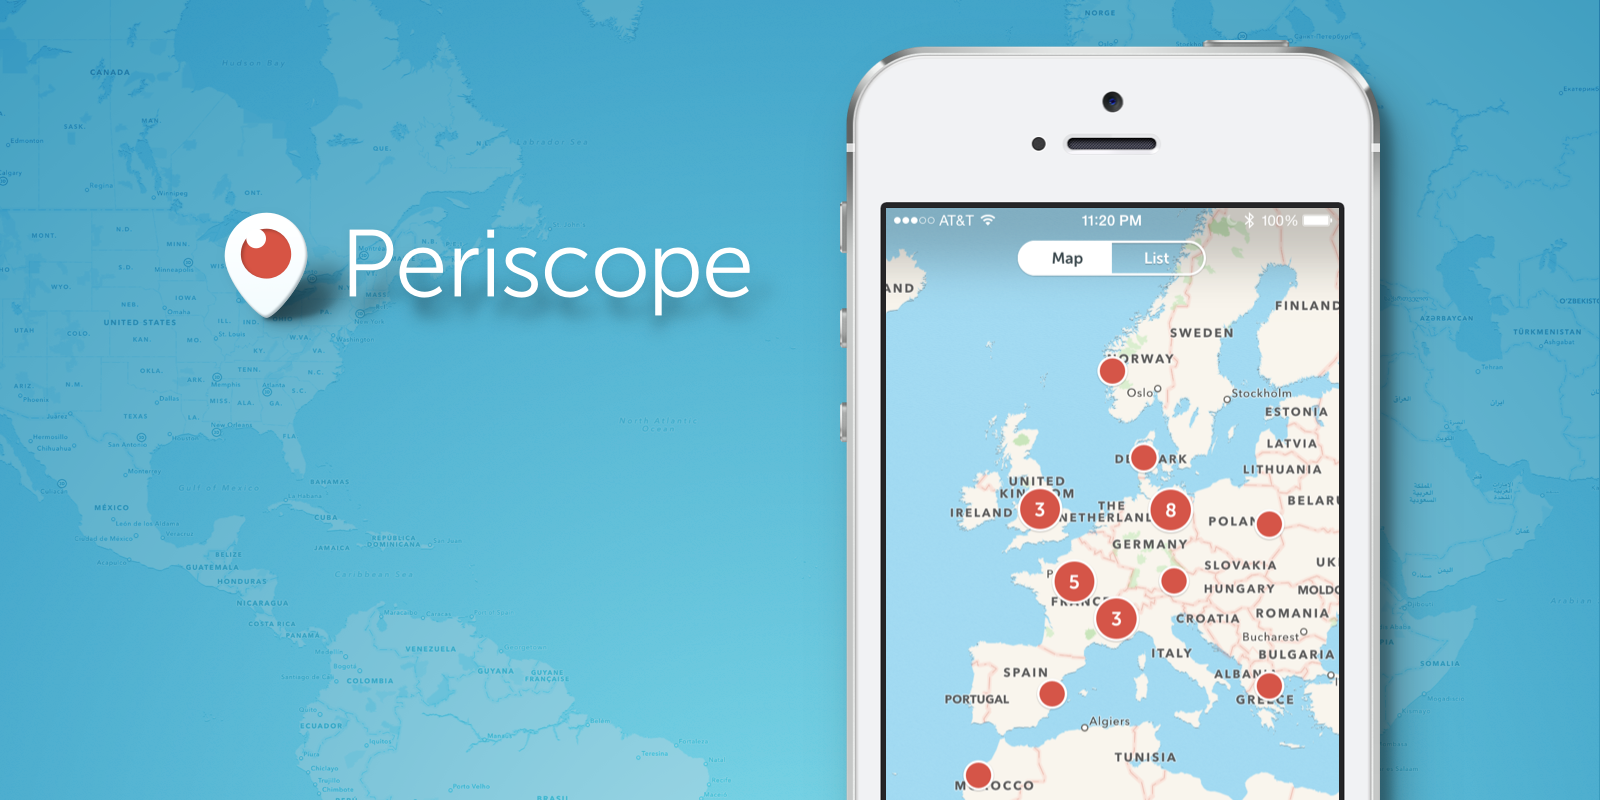 Periscope Series 2: 10 ways to use Periscope to promote your business and bond with your audience